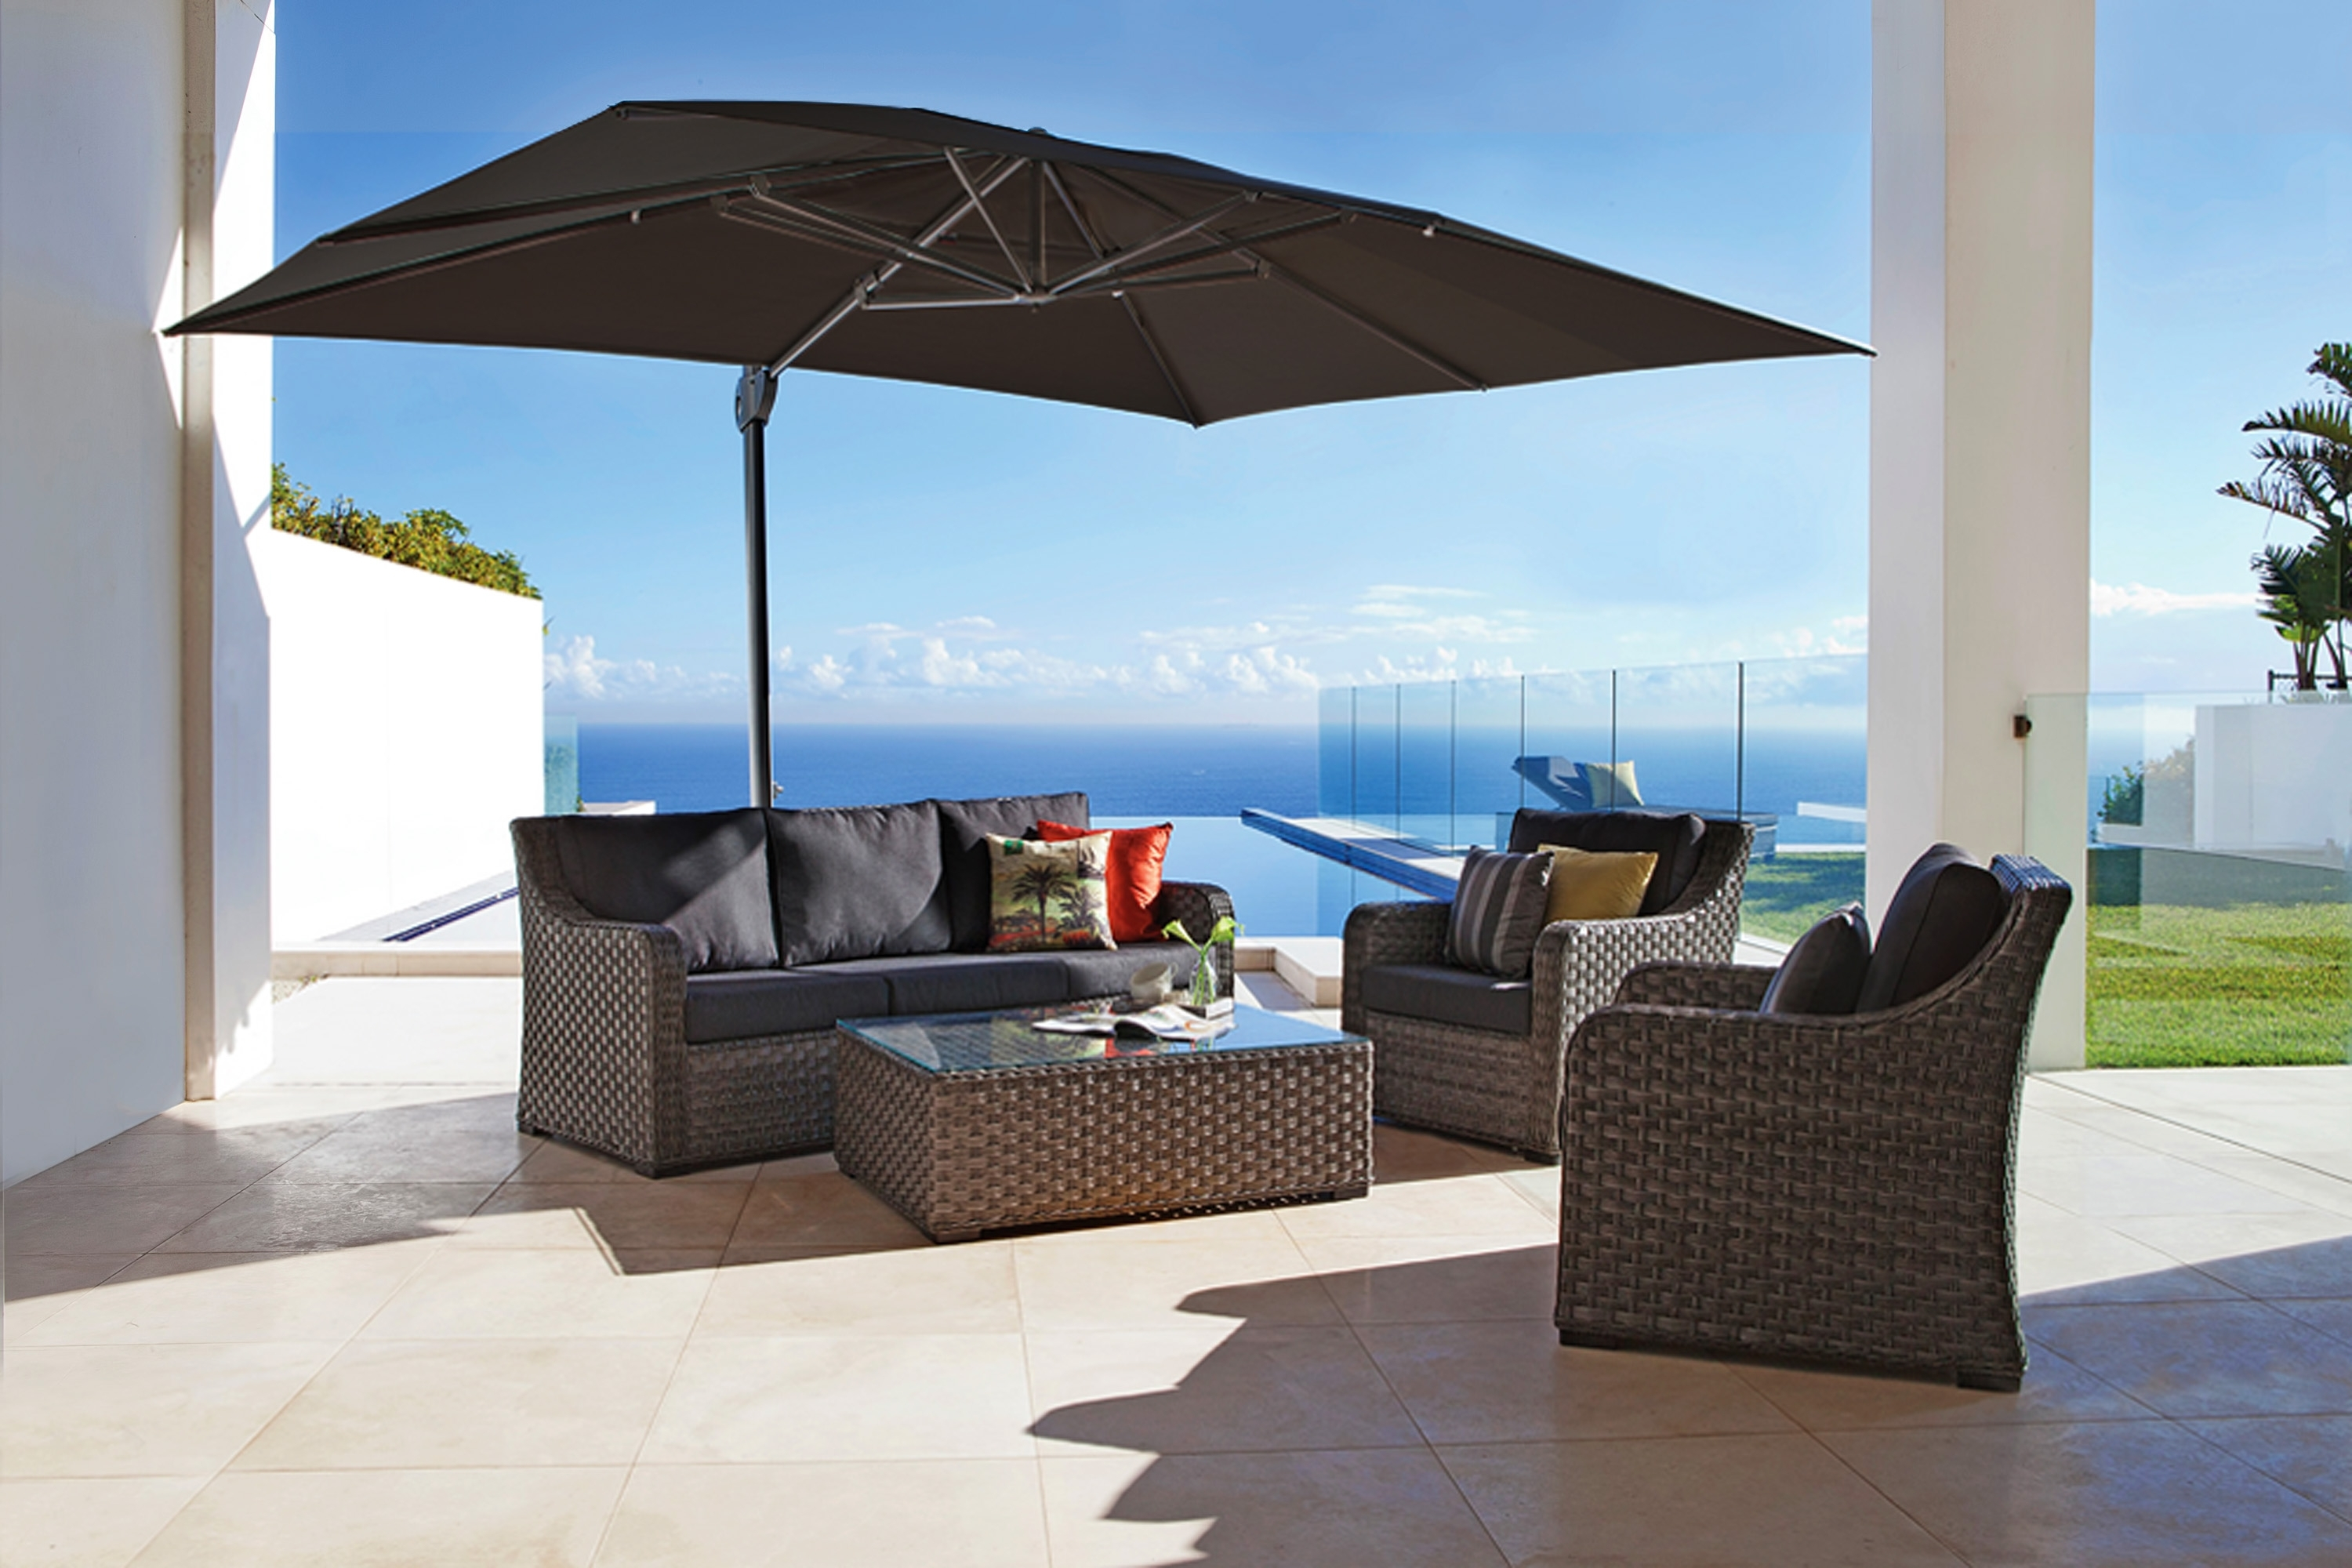 Recent Garden: Enchanting Outdoor Patio Decor Ideas With Patio Umbrellas Regarding Large Patio Umbrellas (View 20 of 20)